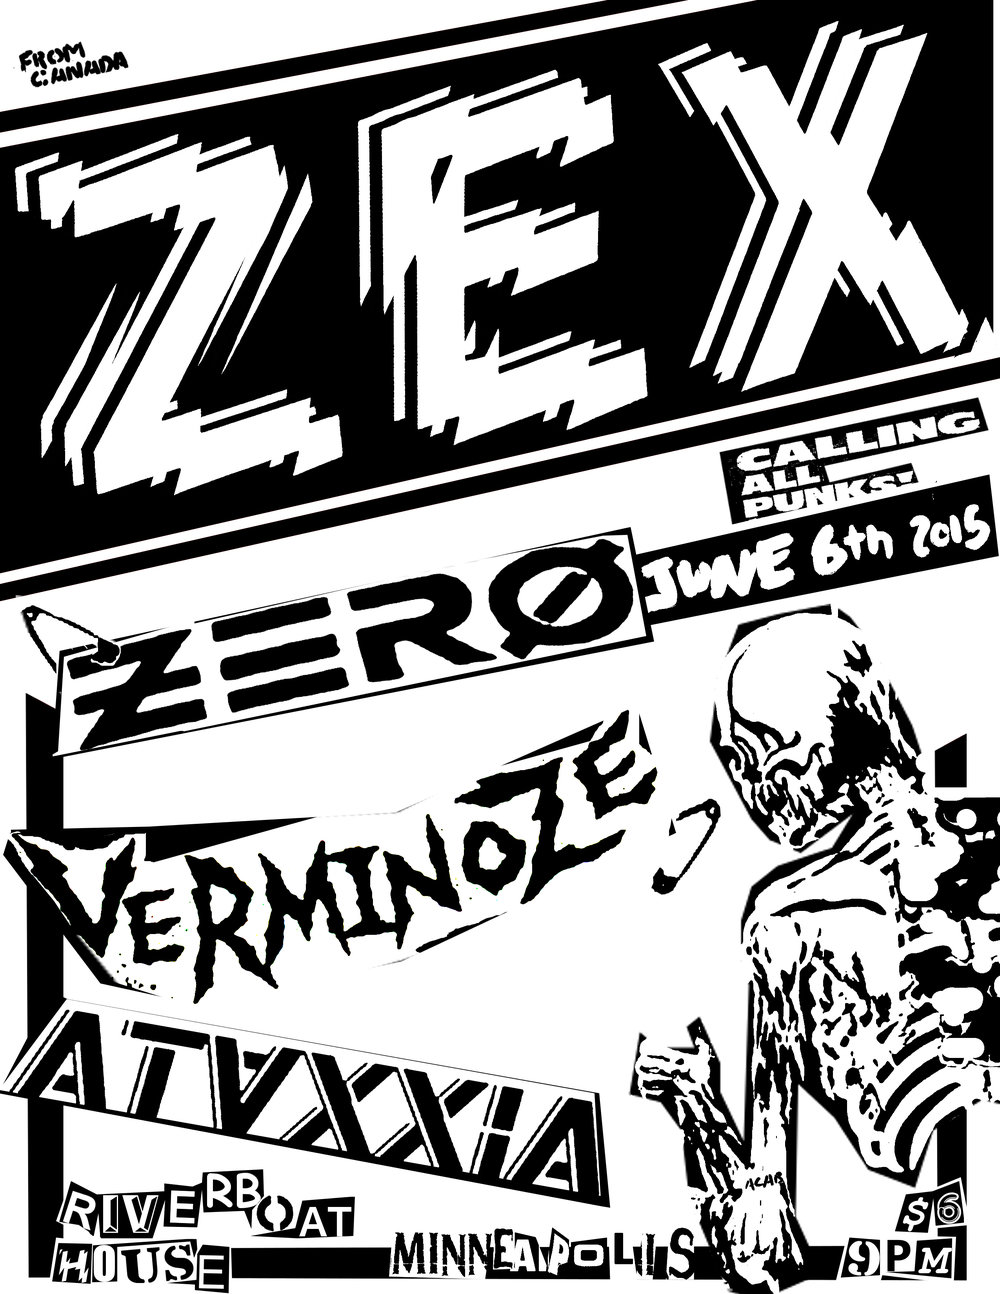 flyer-15.06.06-minneapolis-zex.jpg